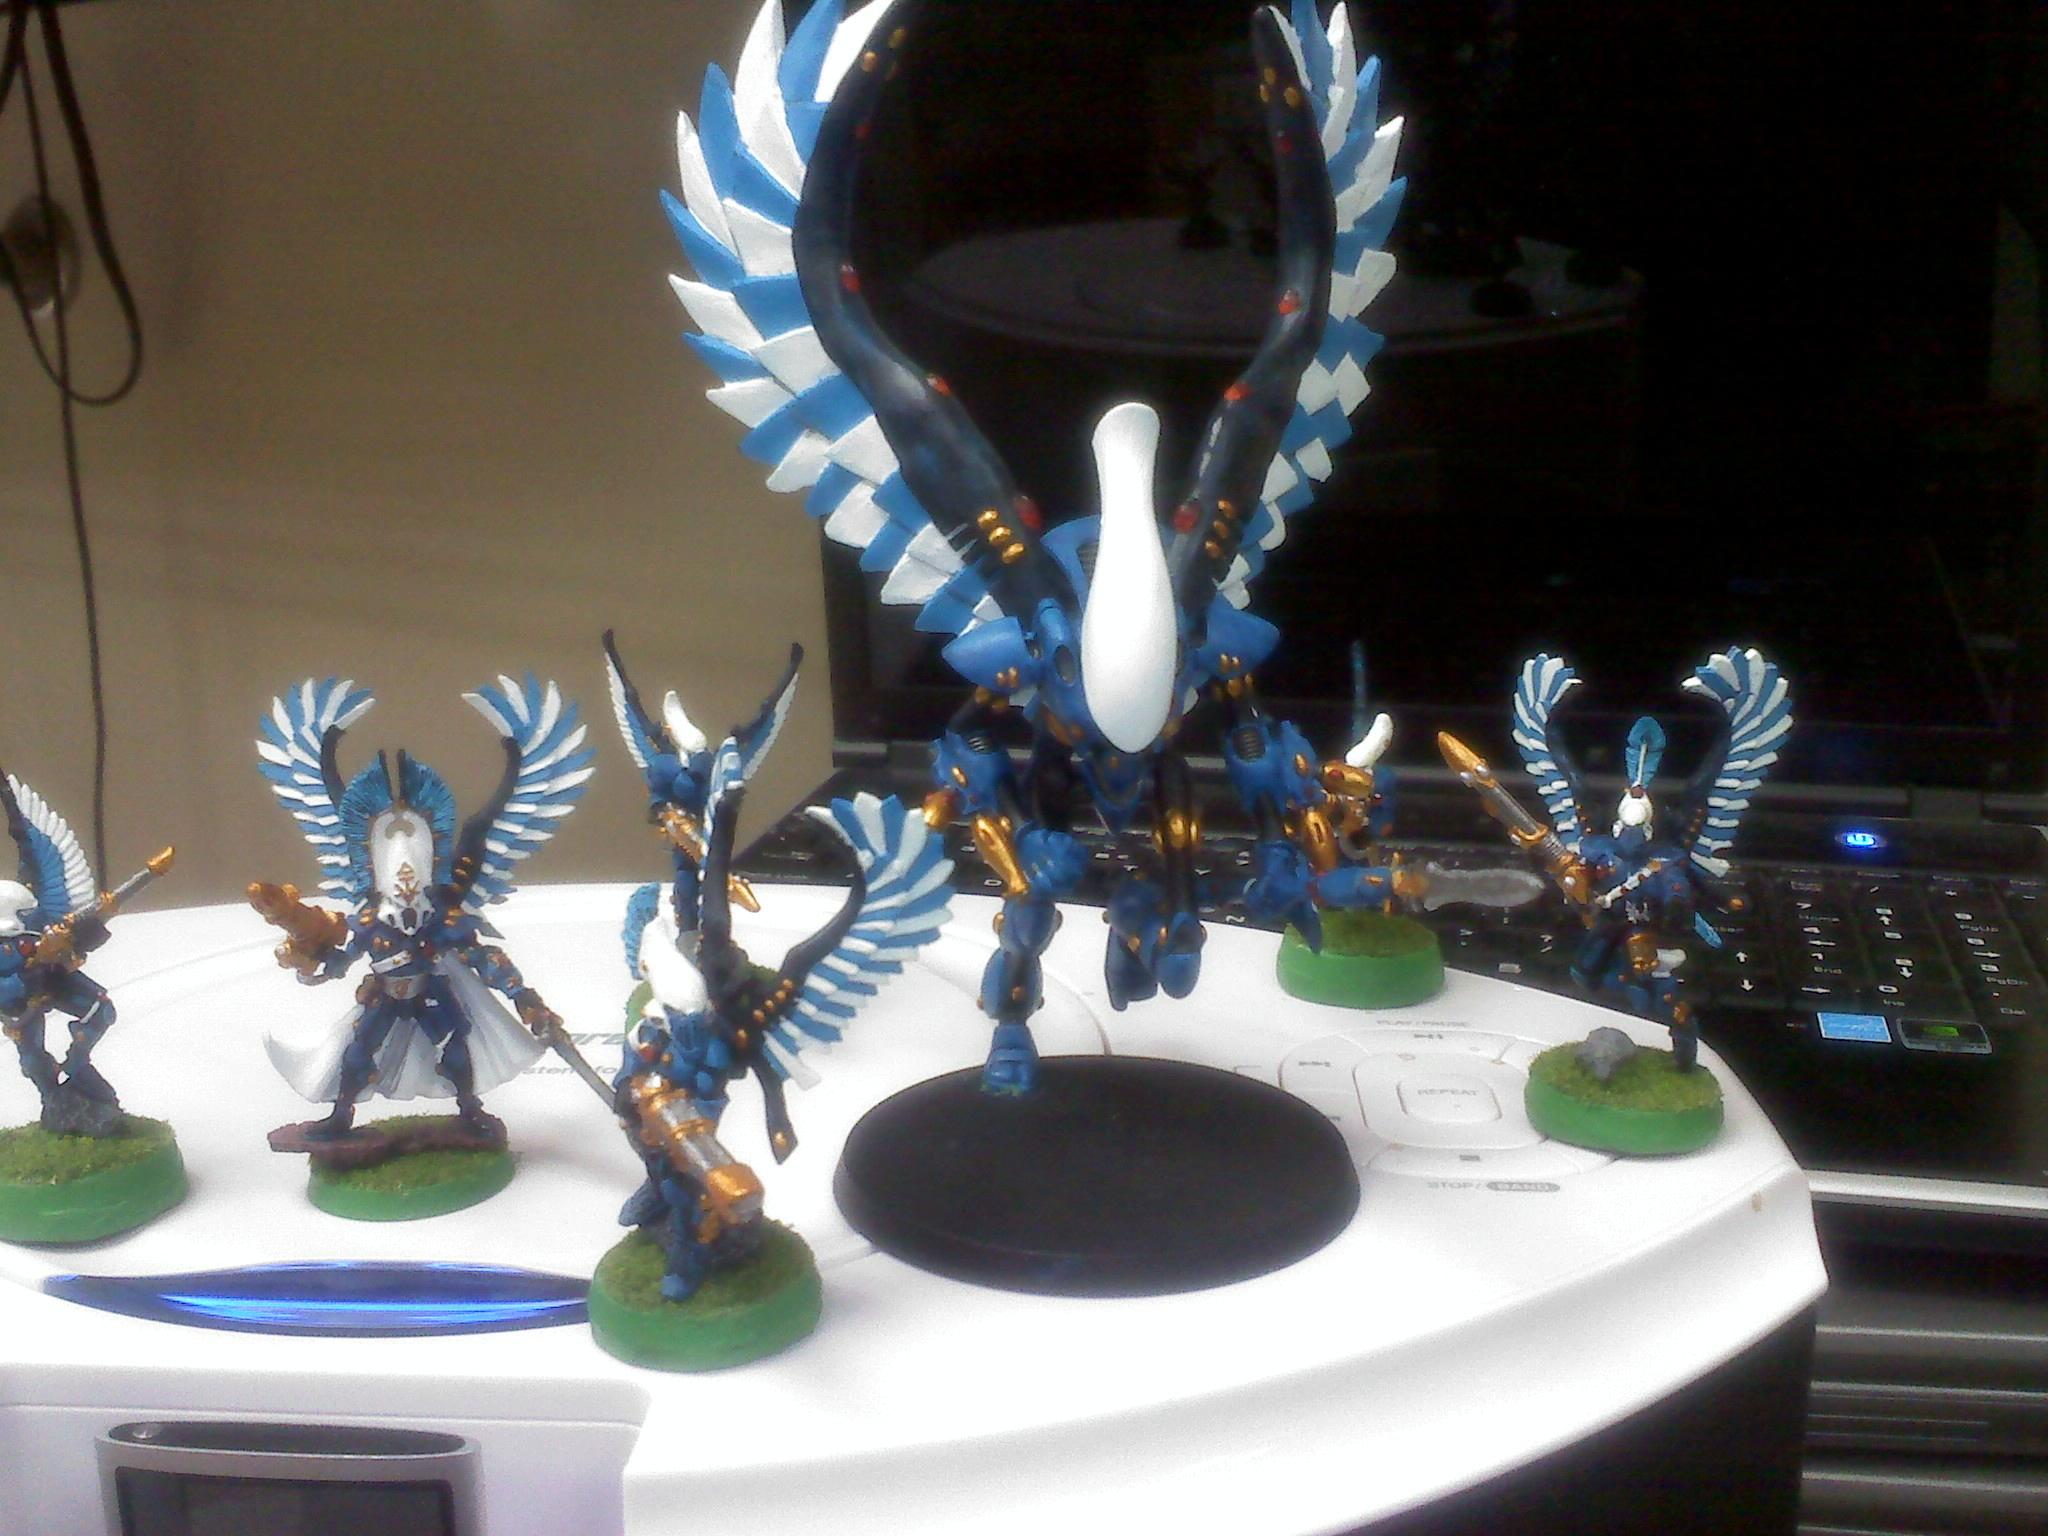 Wraithhawk with Hawks